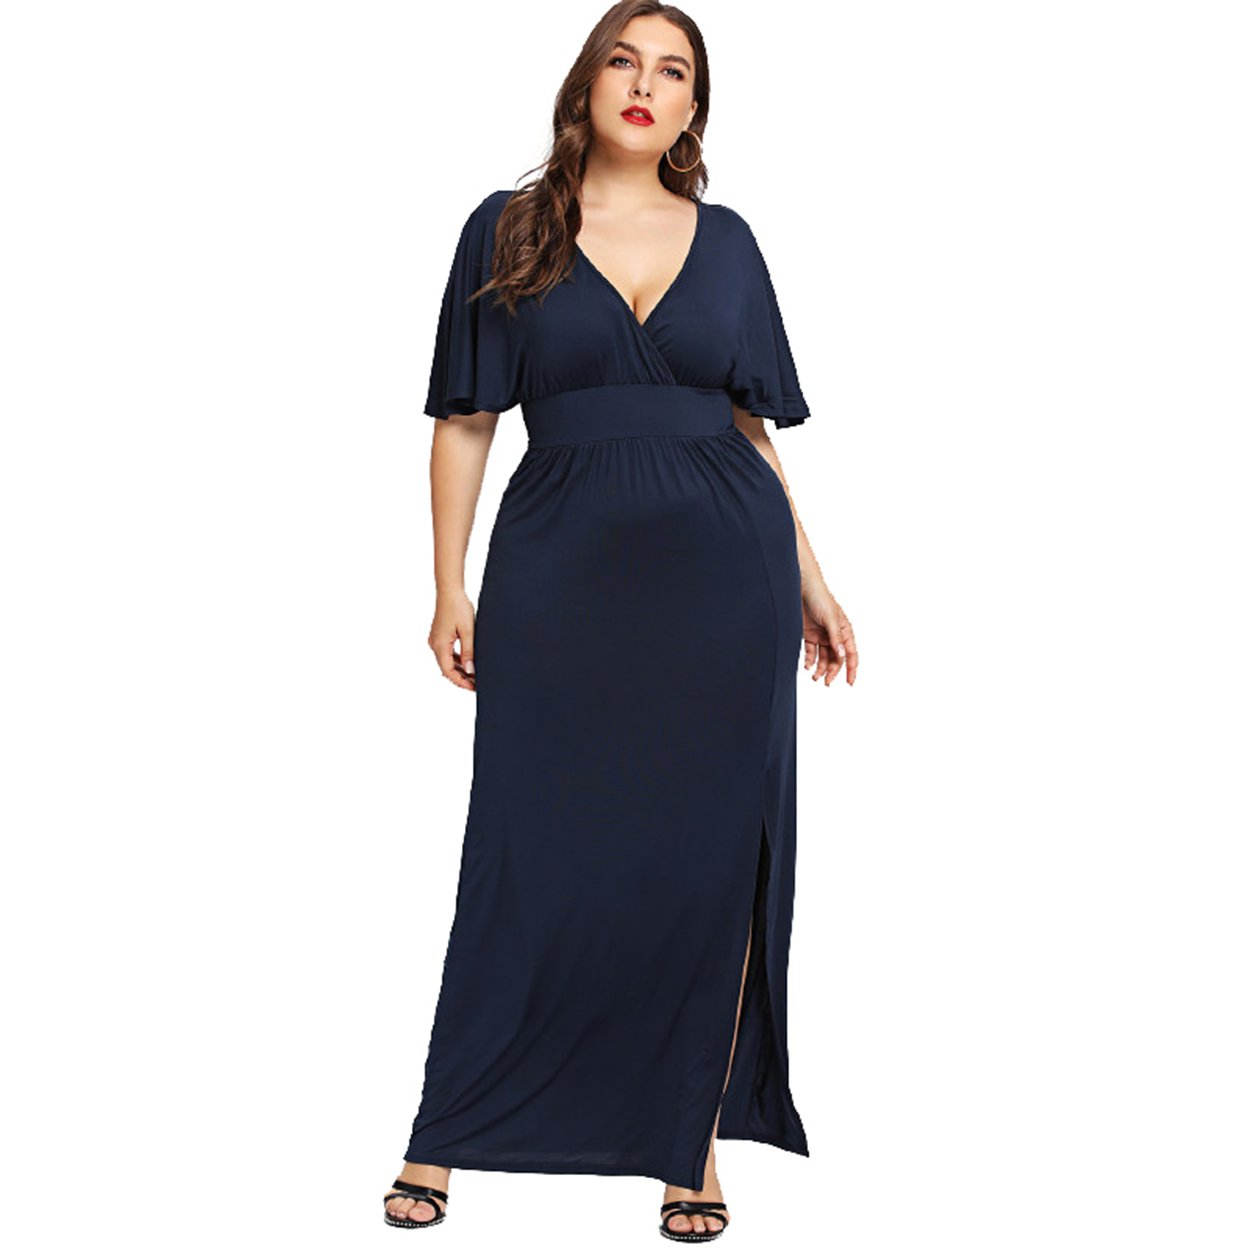 1afdb64859 ESPRLIA Women s Empire Waist Short Sleeve Plus Size Maxi Casual Dress with  Belts at Amazon Women s Clothing store